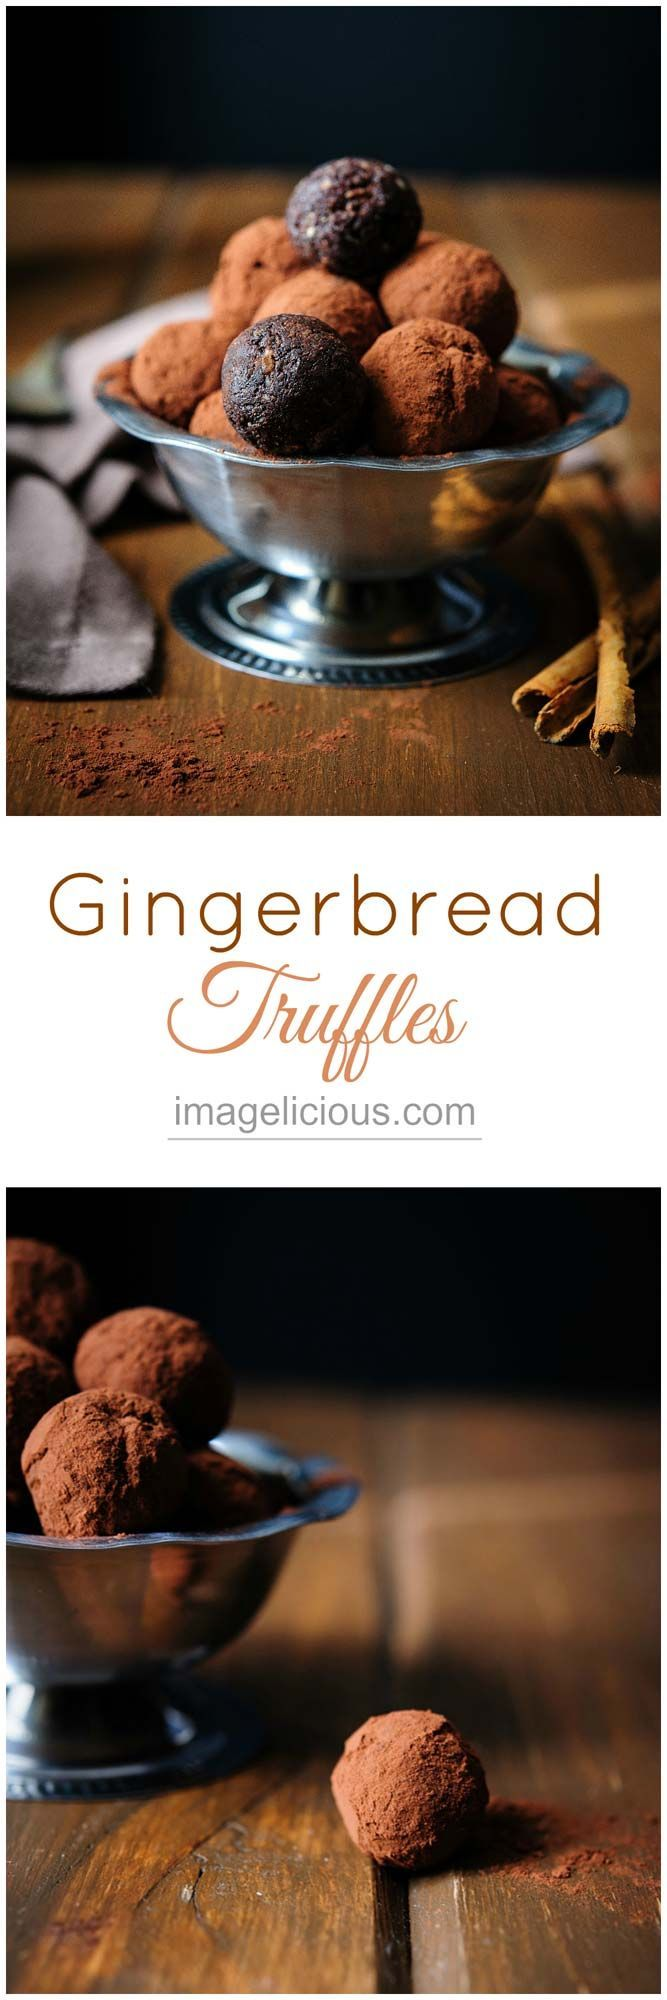 Gingerbread Truffles are delectable and addictive with perfect holiday flavours, no-one will know that these sweet and delicious treats are made out of dates, prunes and pecans. They are vegan and gluten-free.   Imagelicious #Holidays #Holidaybaking #Christmas #Christmasbaking #Gingerbread #Truffles #Vegan #Dates #Imagelicious #GlutenFree